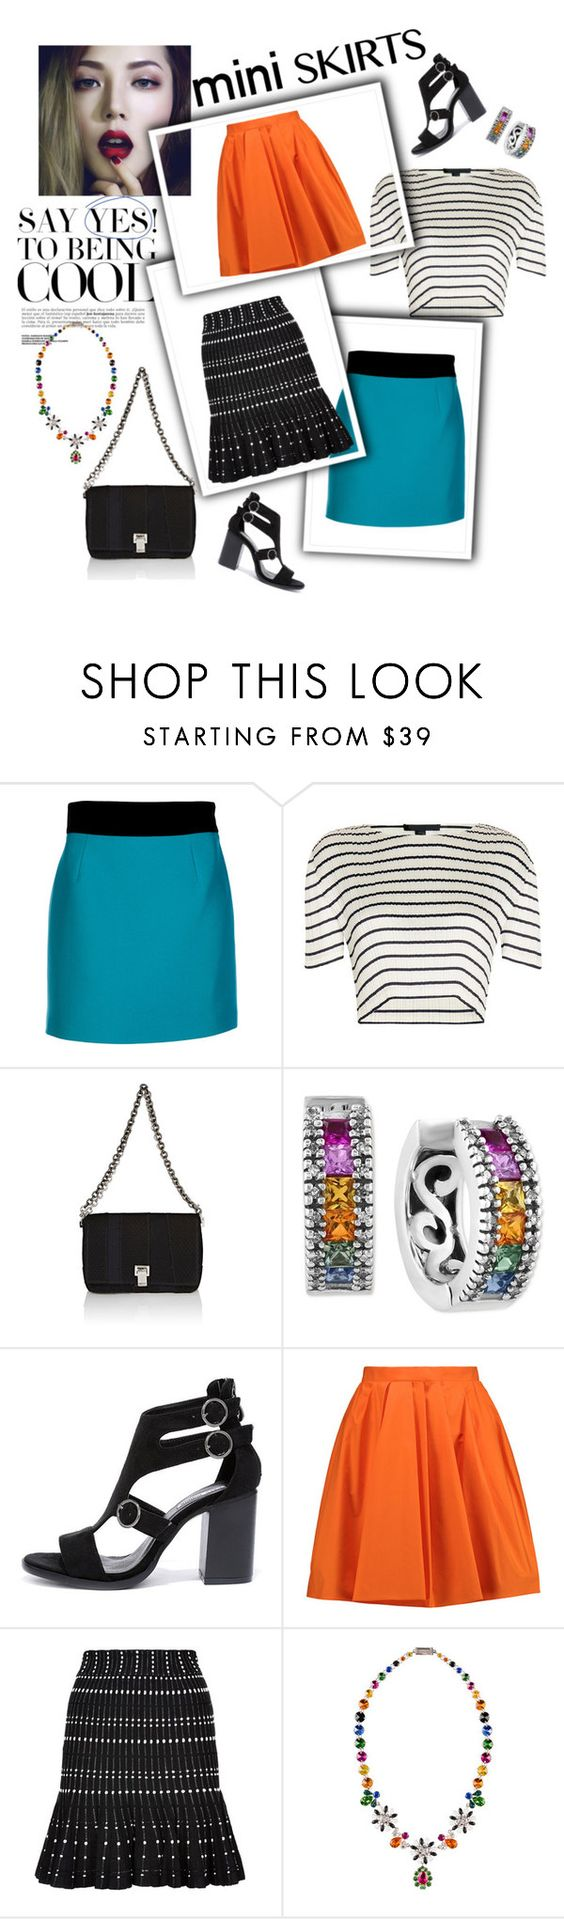 """""""Mini me: mini skirts"""" by tippy1717 on Polyvore featuring FAUSTO PUGLISI, Alexander Wang, Proenza Schouler, Effy Jewelry, Cape Robbin, Carven, Alexander McQueen and Miu Miu"""